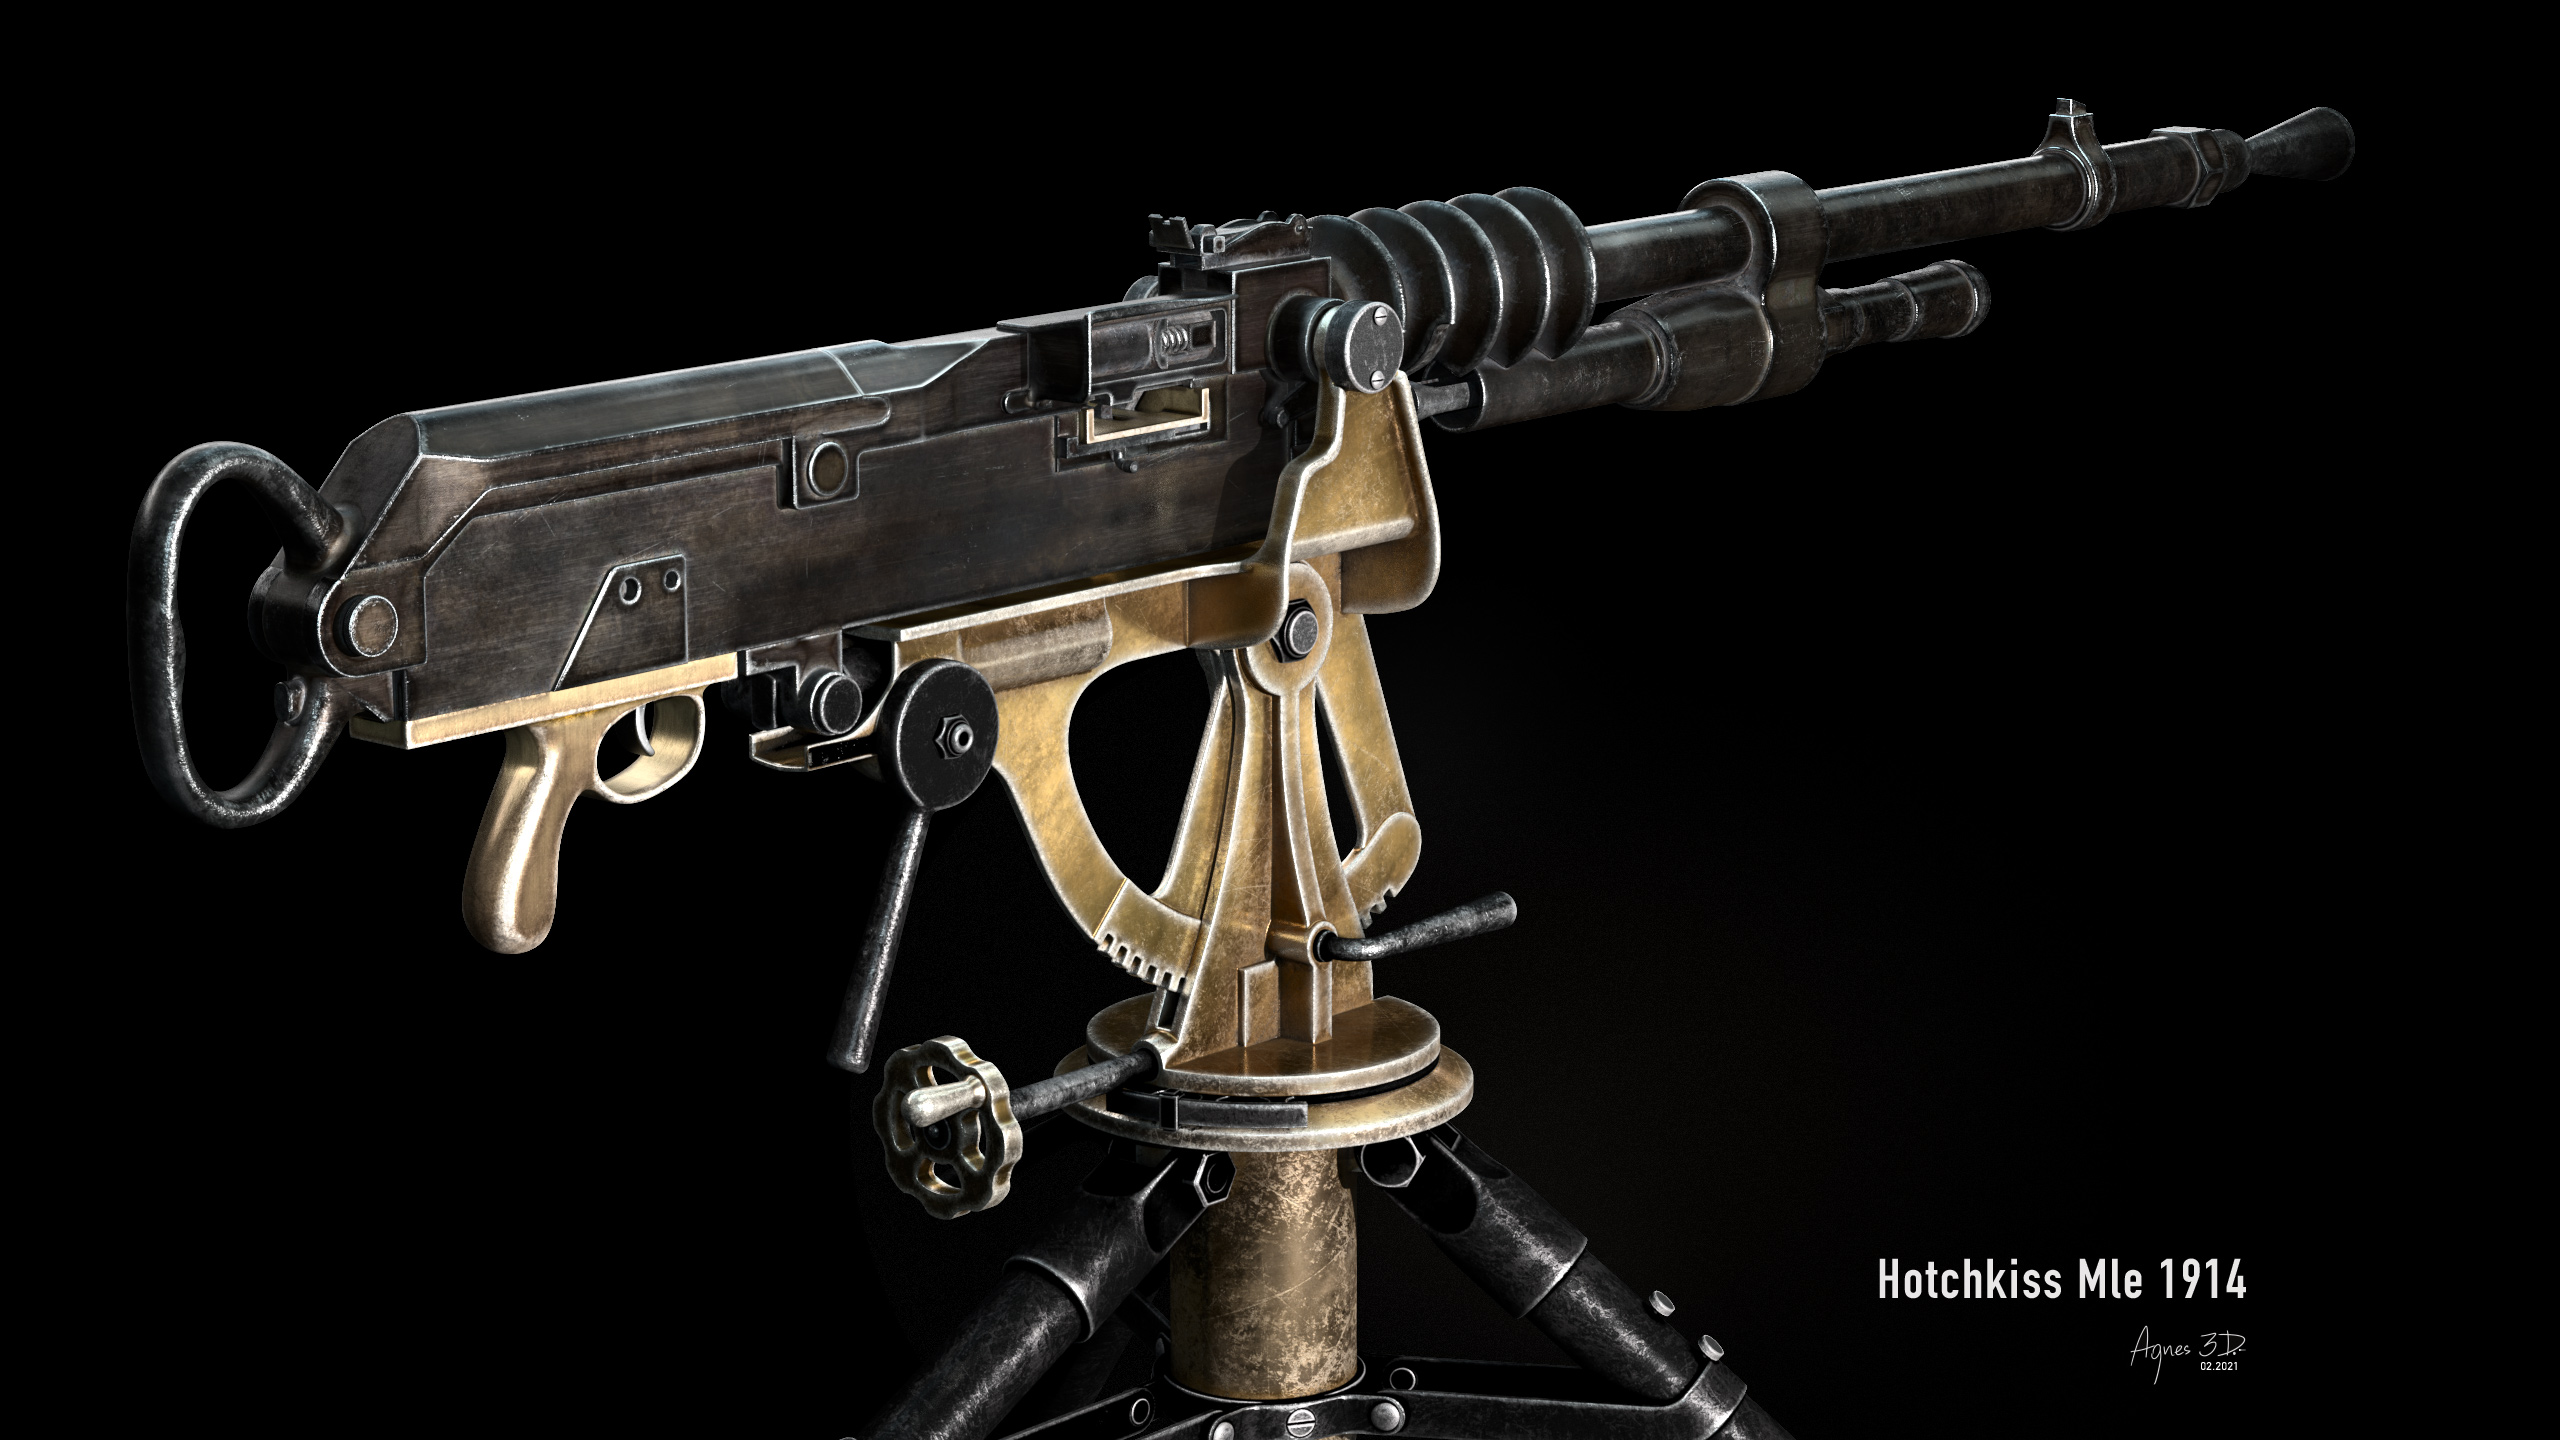 Hotchkiss MLE 1914 machine gun